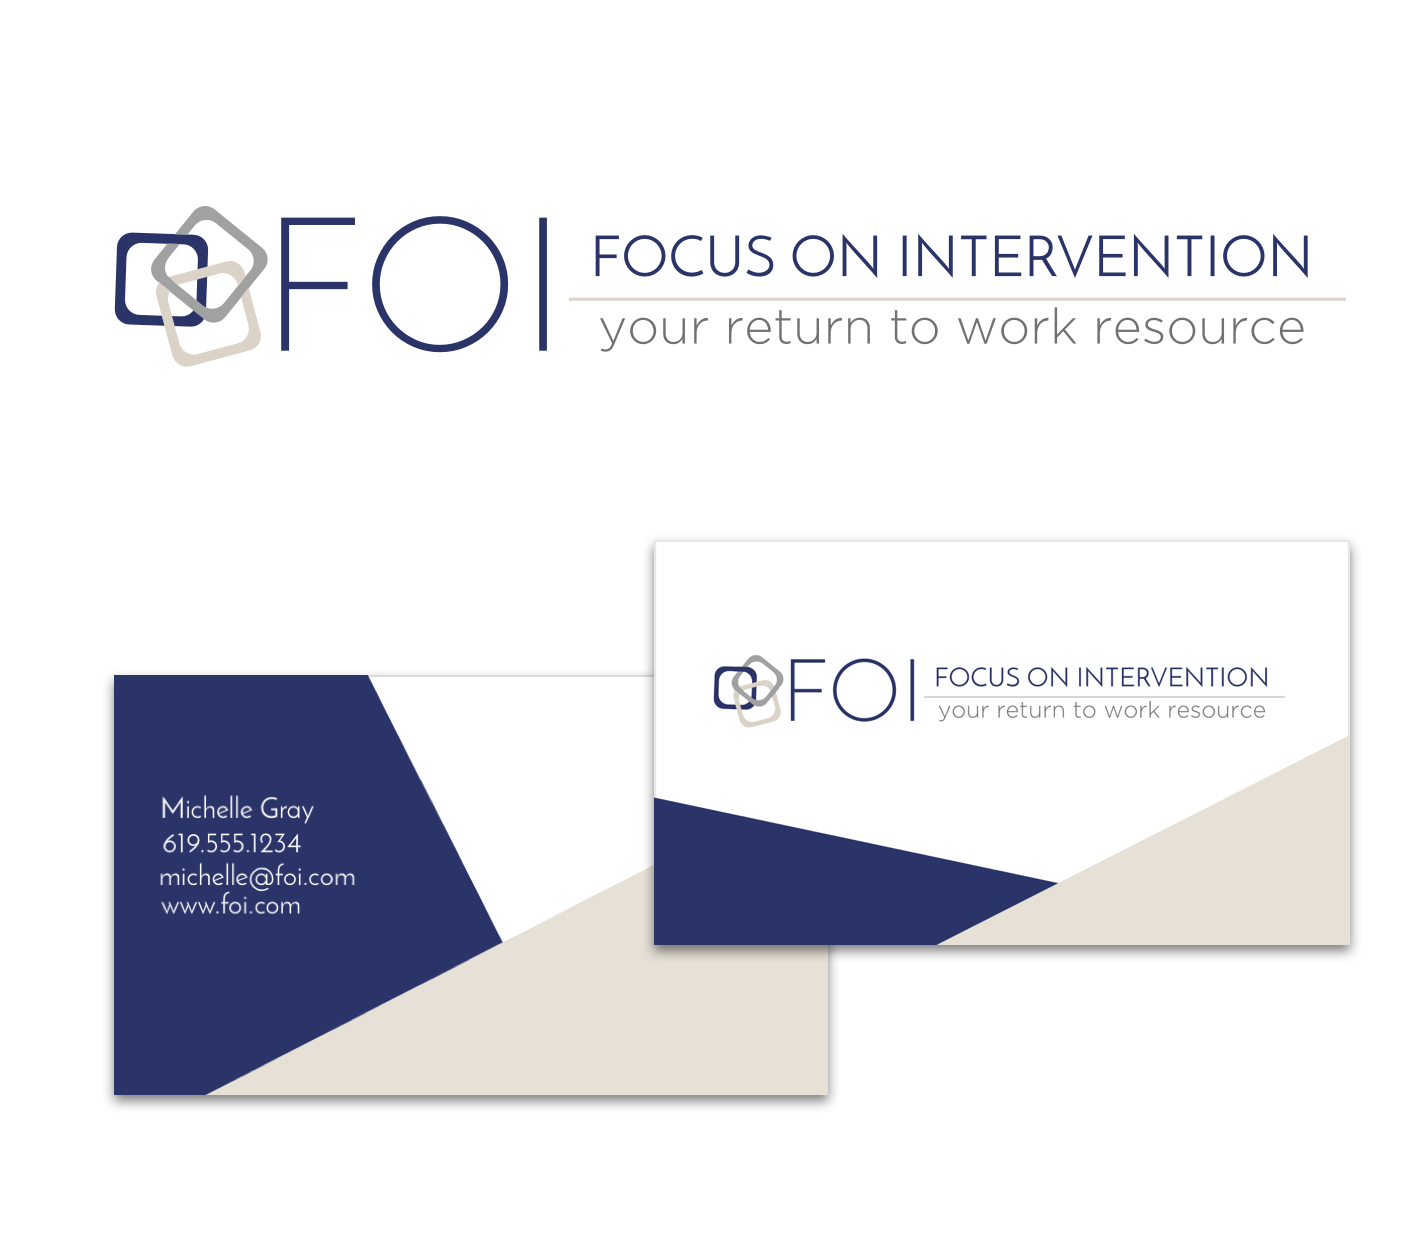 Focus on Intervention